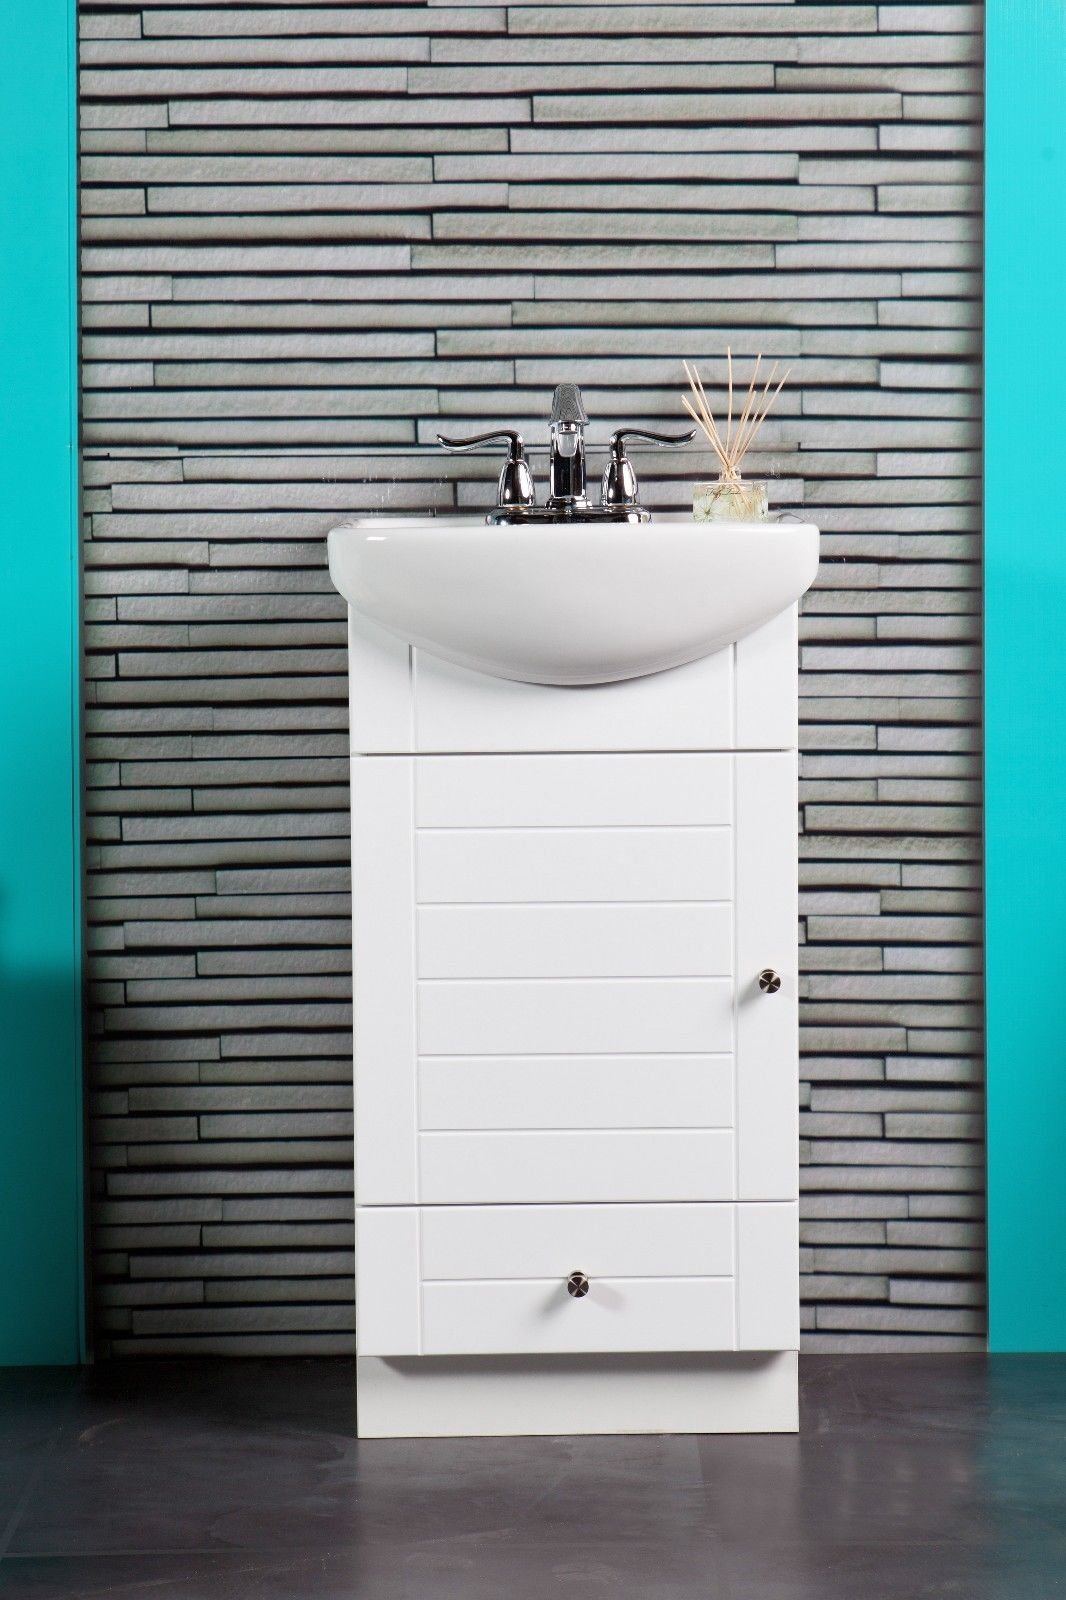 SMALL BATHROOM VANITY CABINET AND SINK WHITE - PE1612W NEW PETITE VANITY by Fine Fixtures